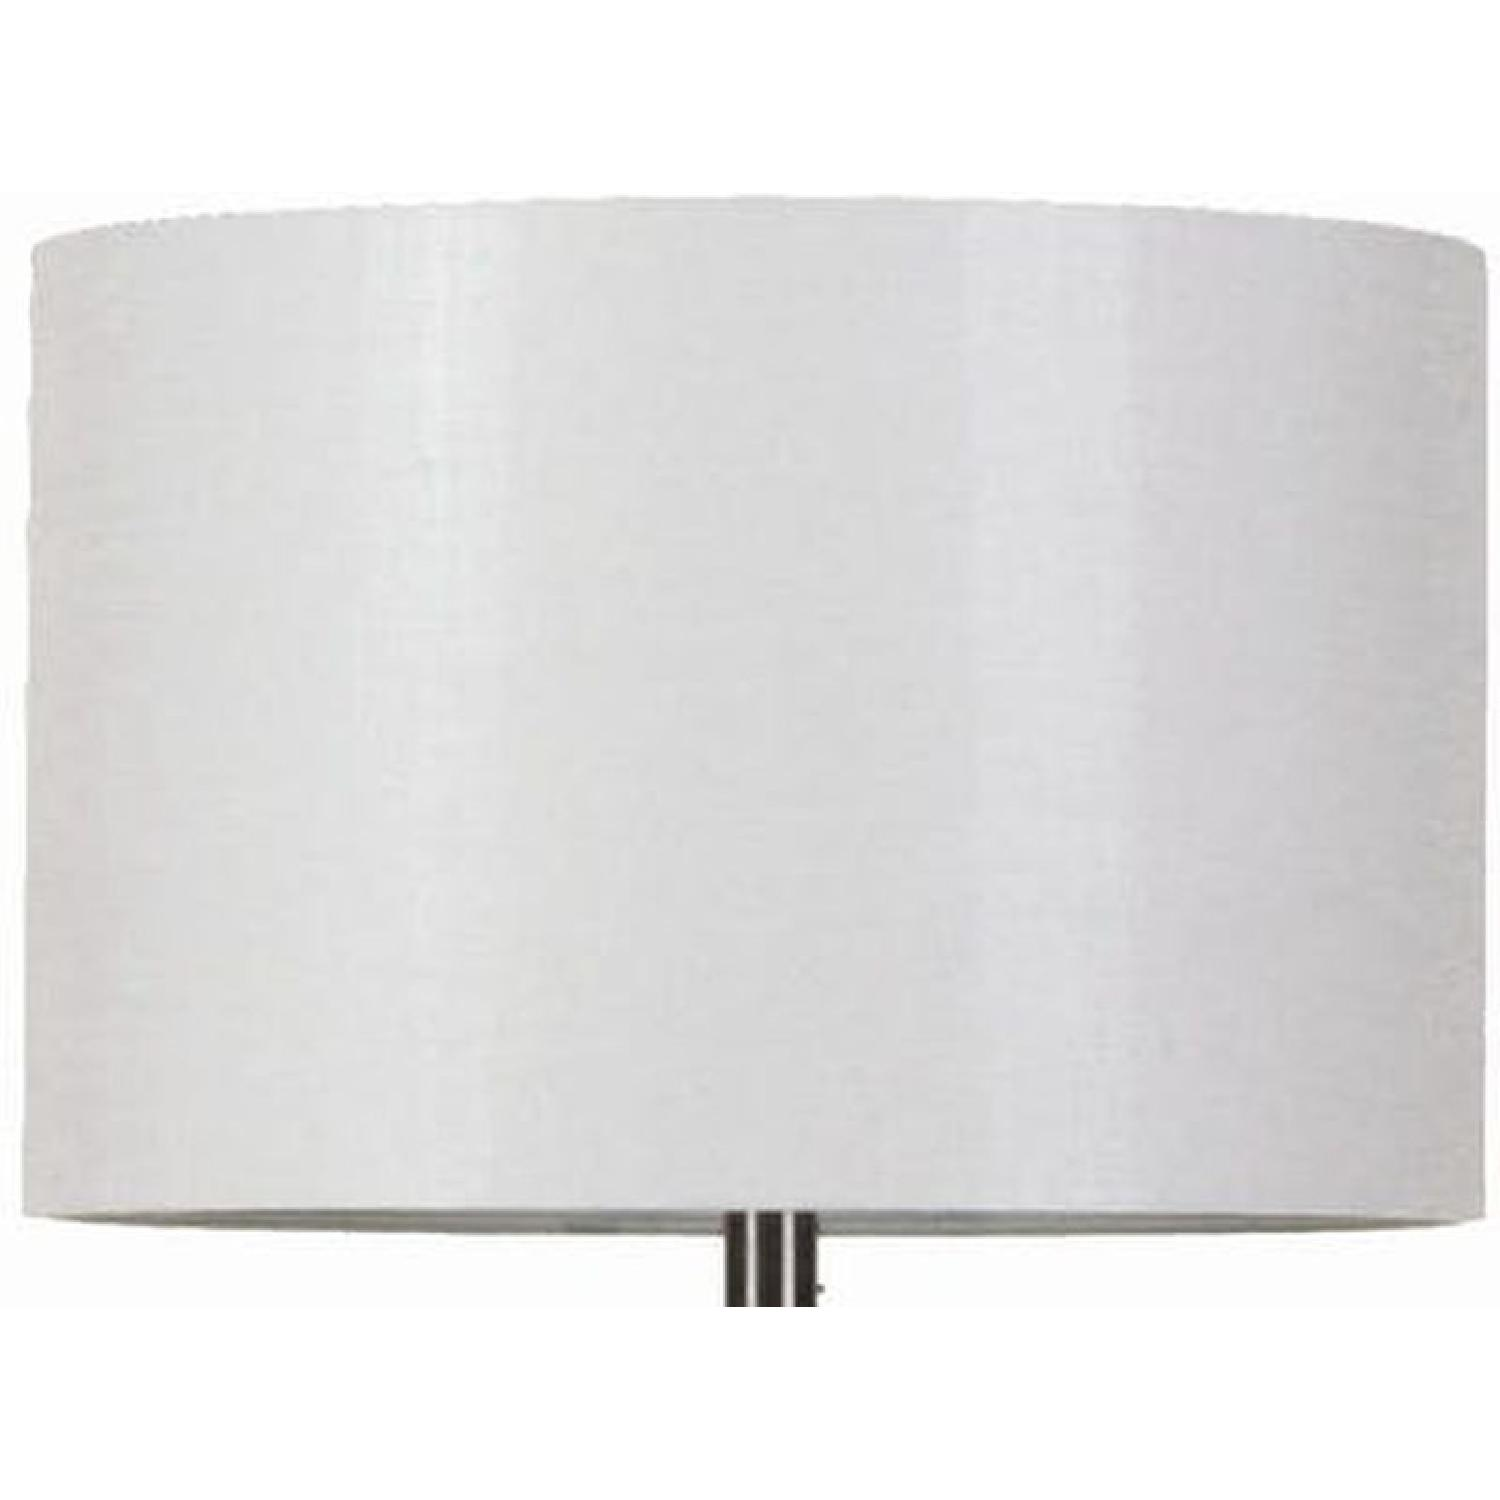 Table Lamp w/ Perpendicular Lines in an Architectural Frame - image-7